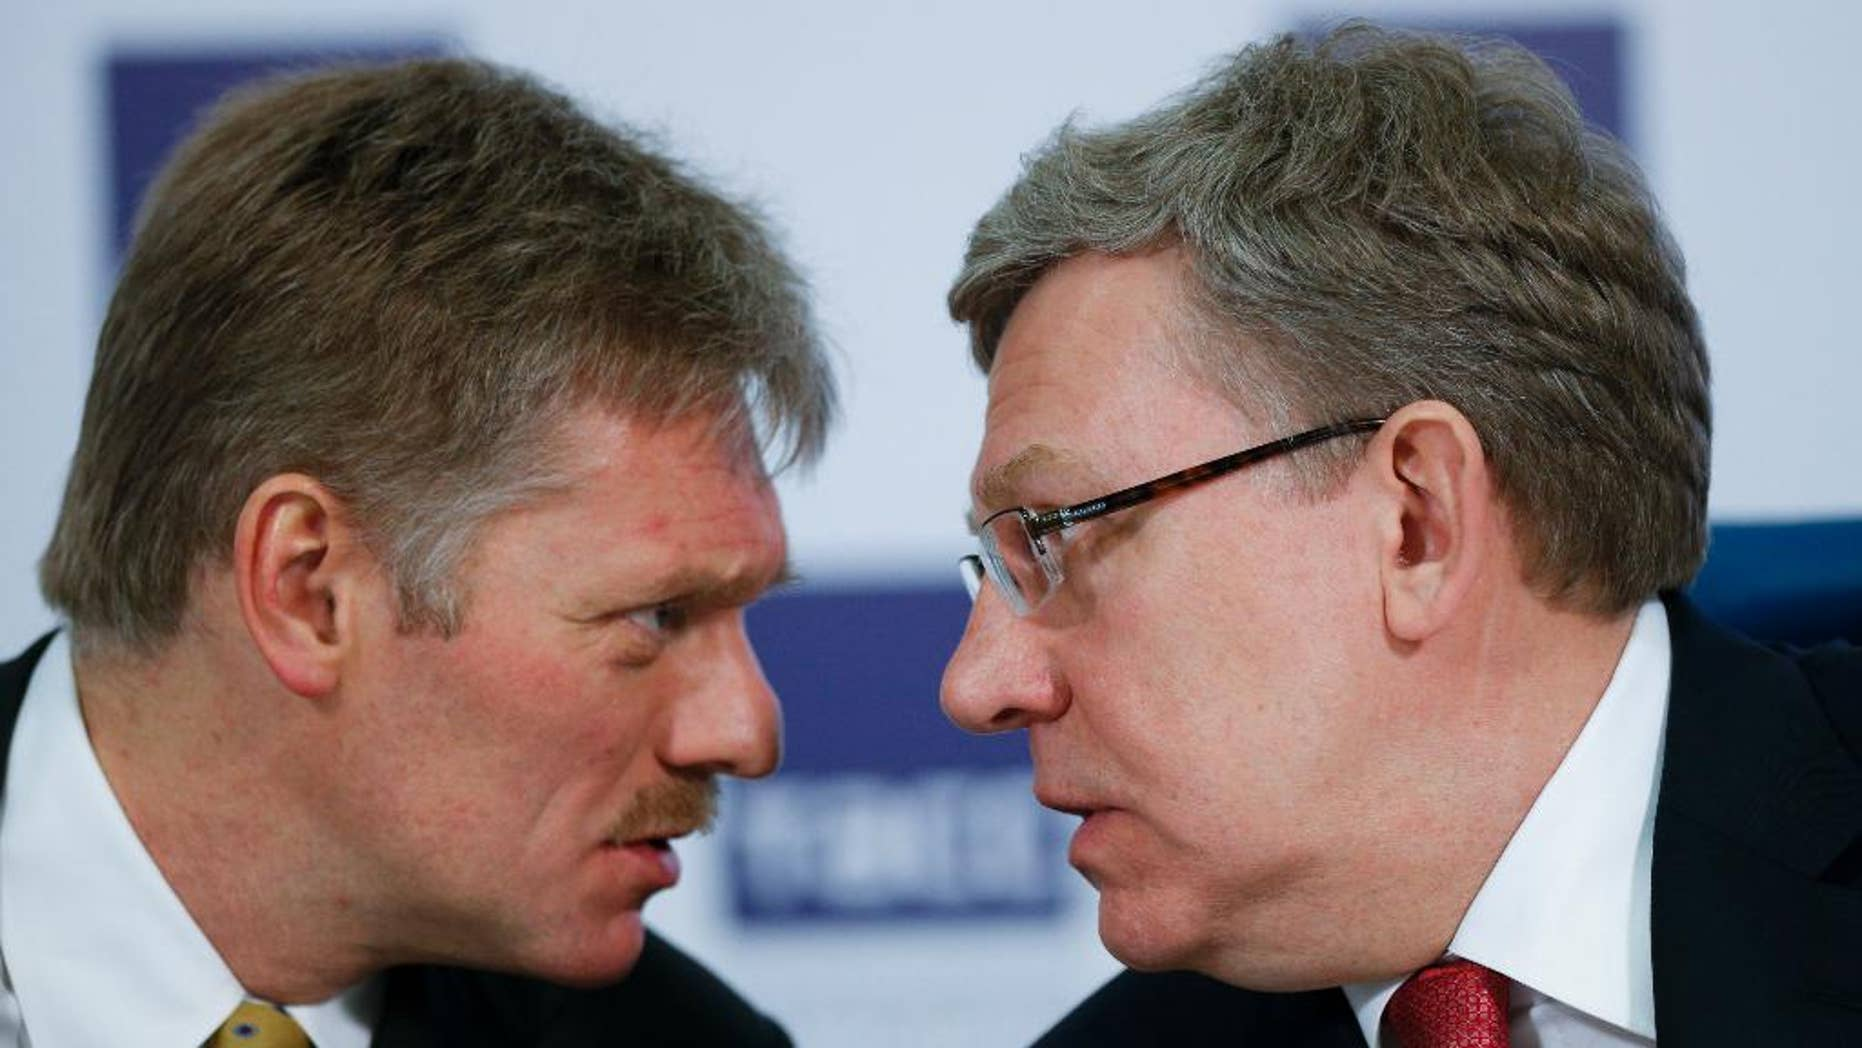 Russian President Vladimir Putin's press secretary Dmitry Peskov, left, speaks to Russia's former finance minister Alexei Kudrin at a round table to mark President Vladimir Putin's 15 years in office, some of the president's long-term allies questioned his political course and warned of economic fallout in Moscow, Russia, Tuesday, March 31, 2015. Alexei Kudrin, Russia's finance minister in 2000-2011 and a former deputy prime minister, said Tuesday that Putin's focus on foreign policy means that Russia won't return in the coming years to the economic growth that would suit a great power.  (AP Photo/Alexander Zemlianichenko)